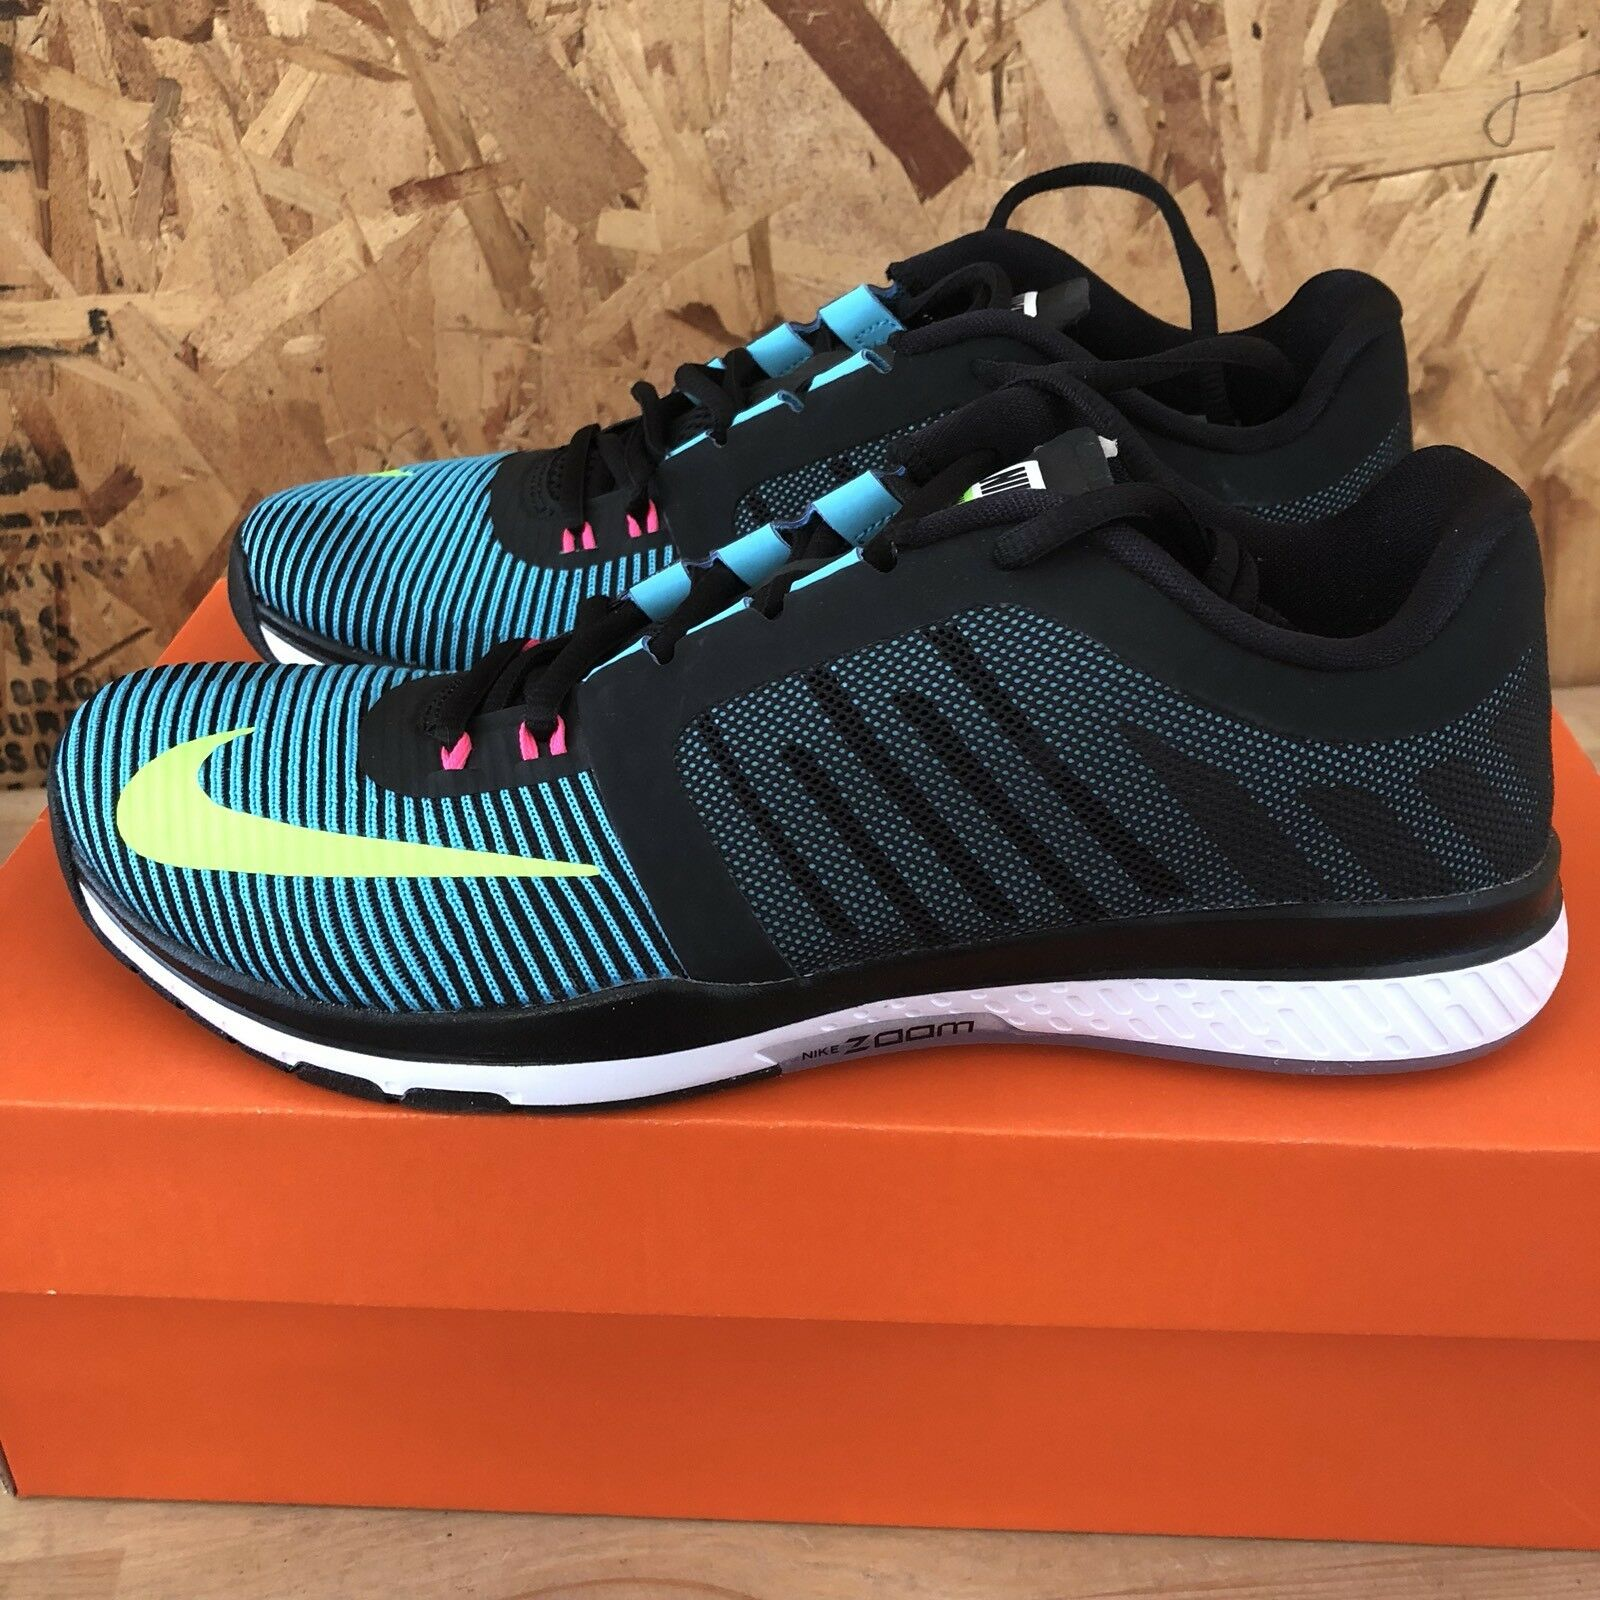 Nike Zoom Speed TR3 - Black   Electric Green   Gamma bluee Size 8 New